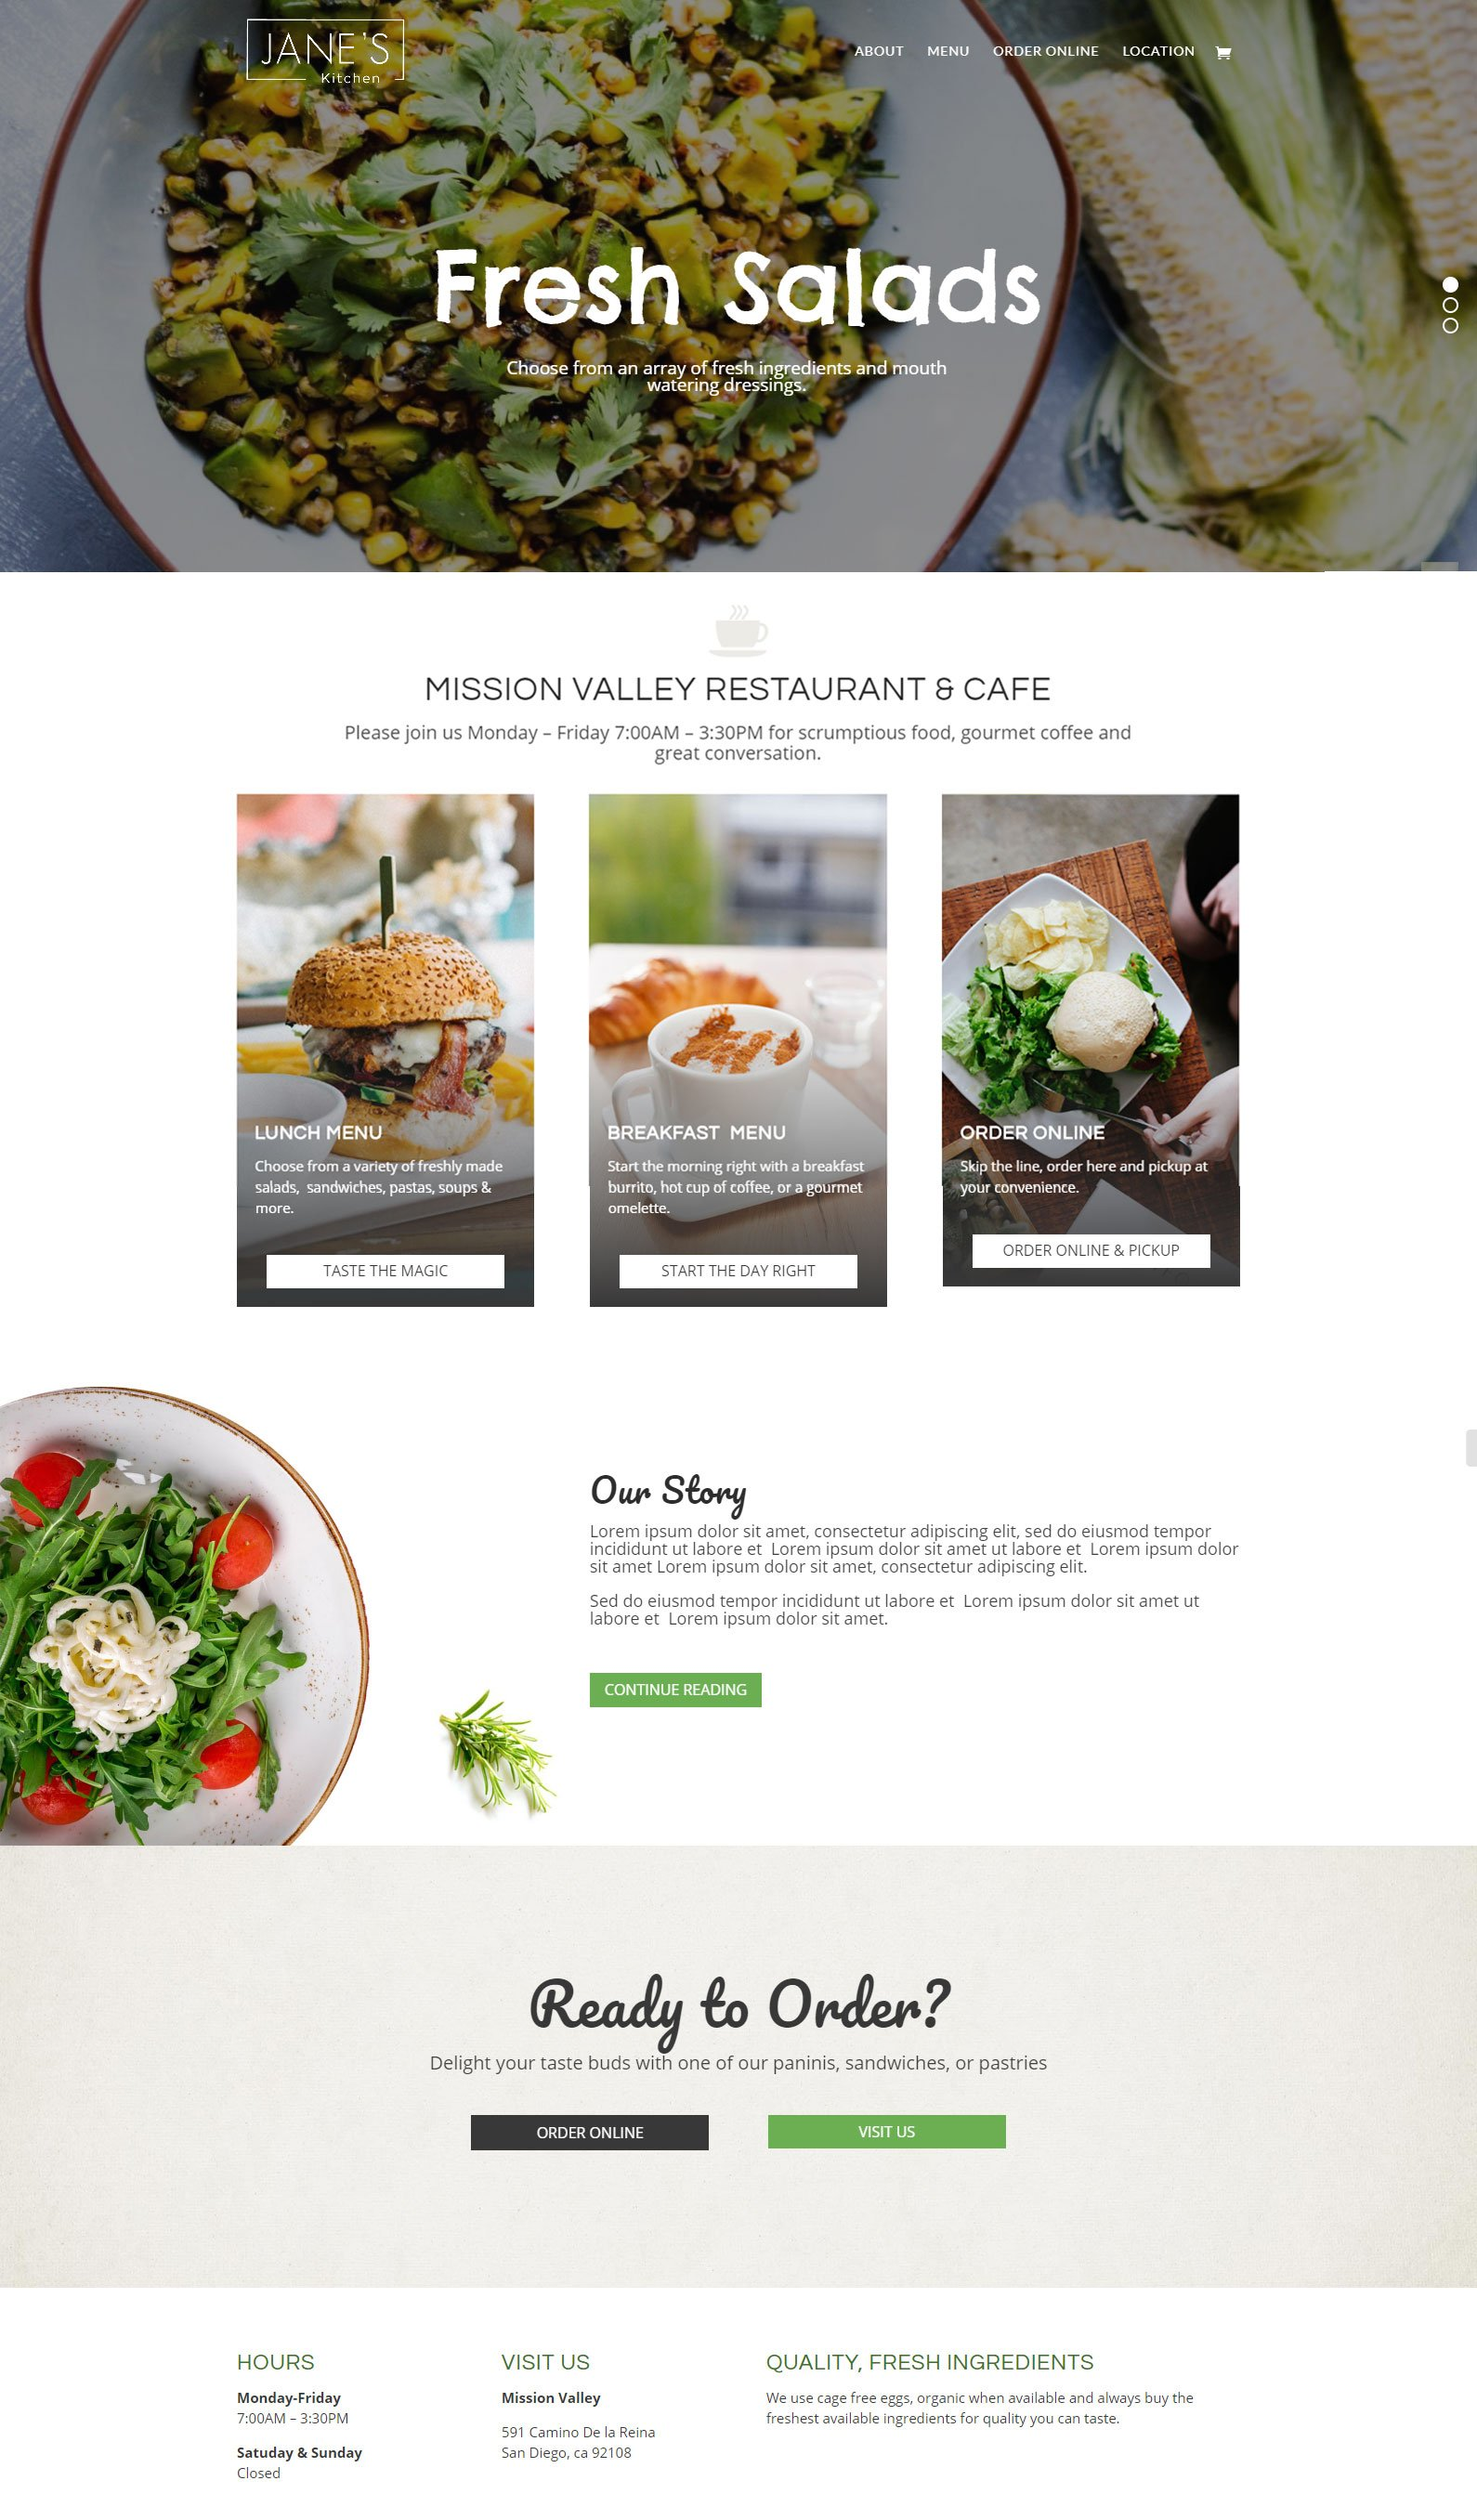 janes-kitchen-menu-design